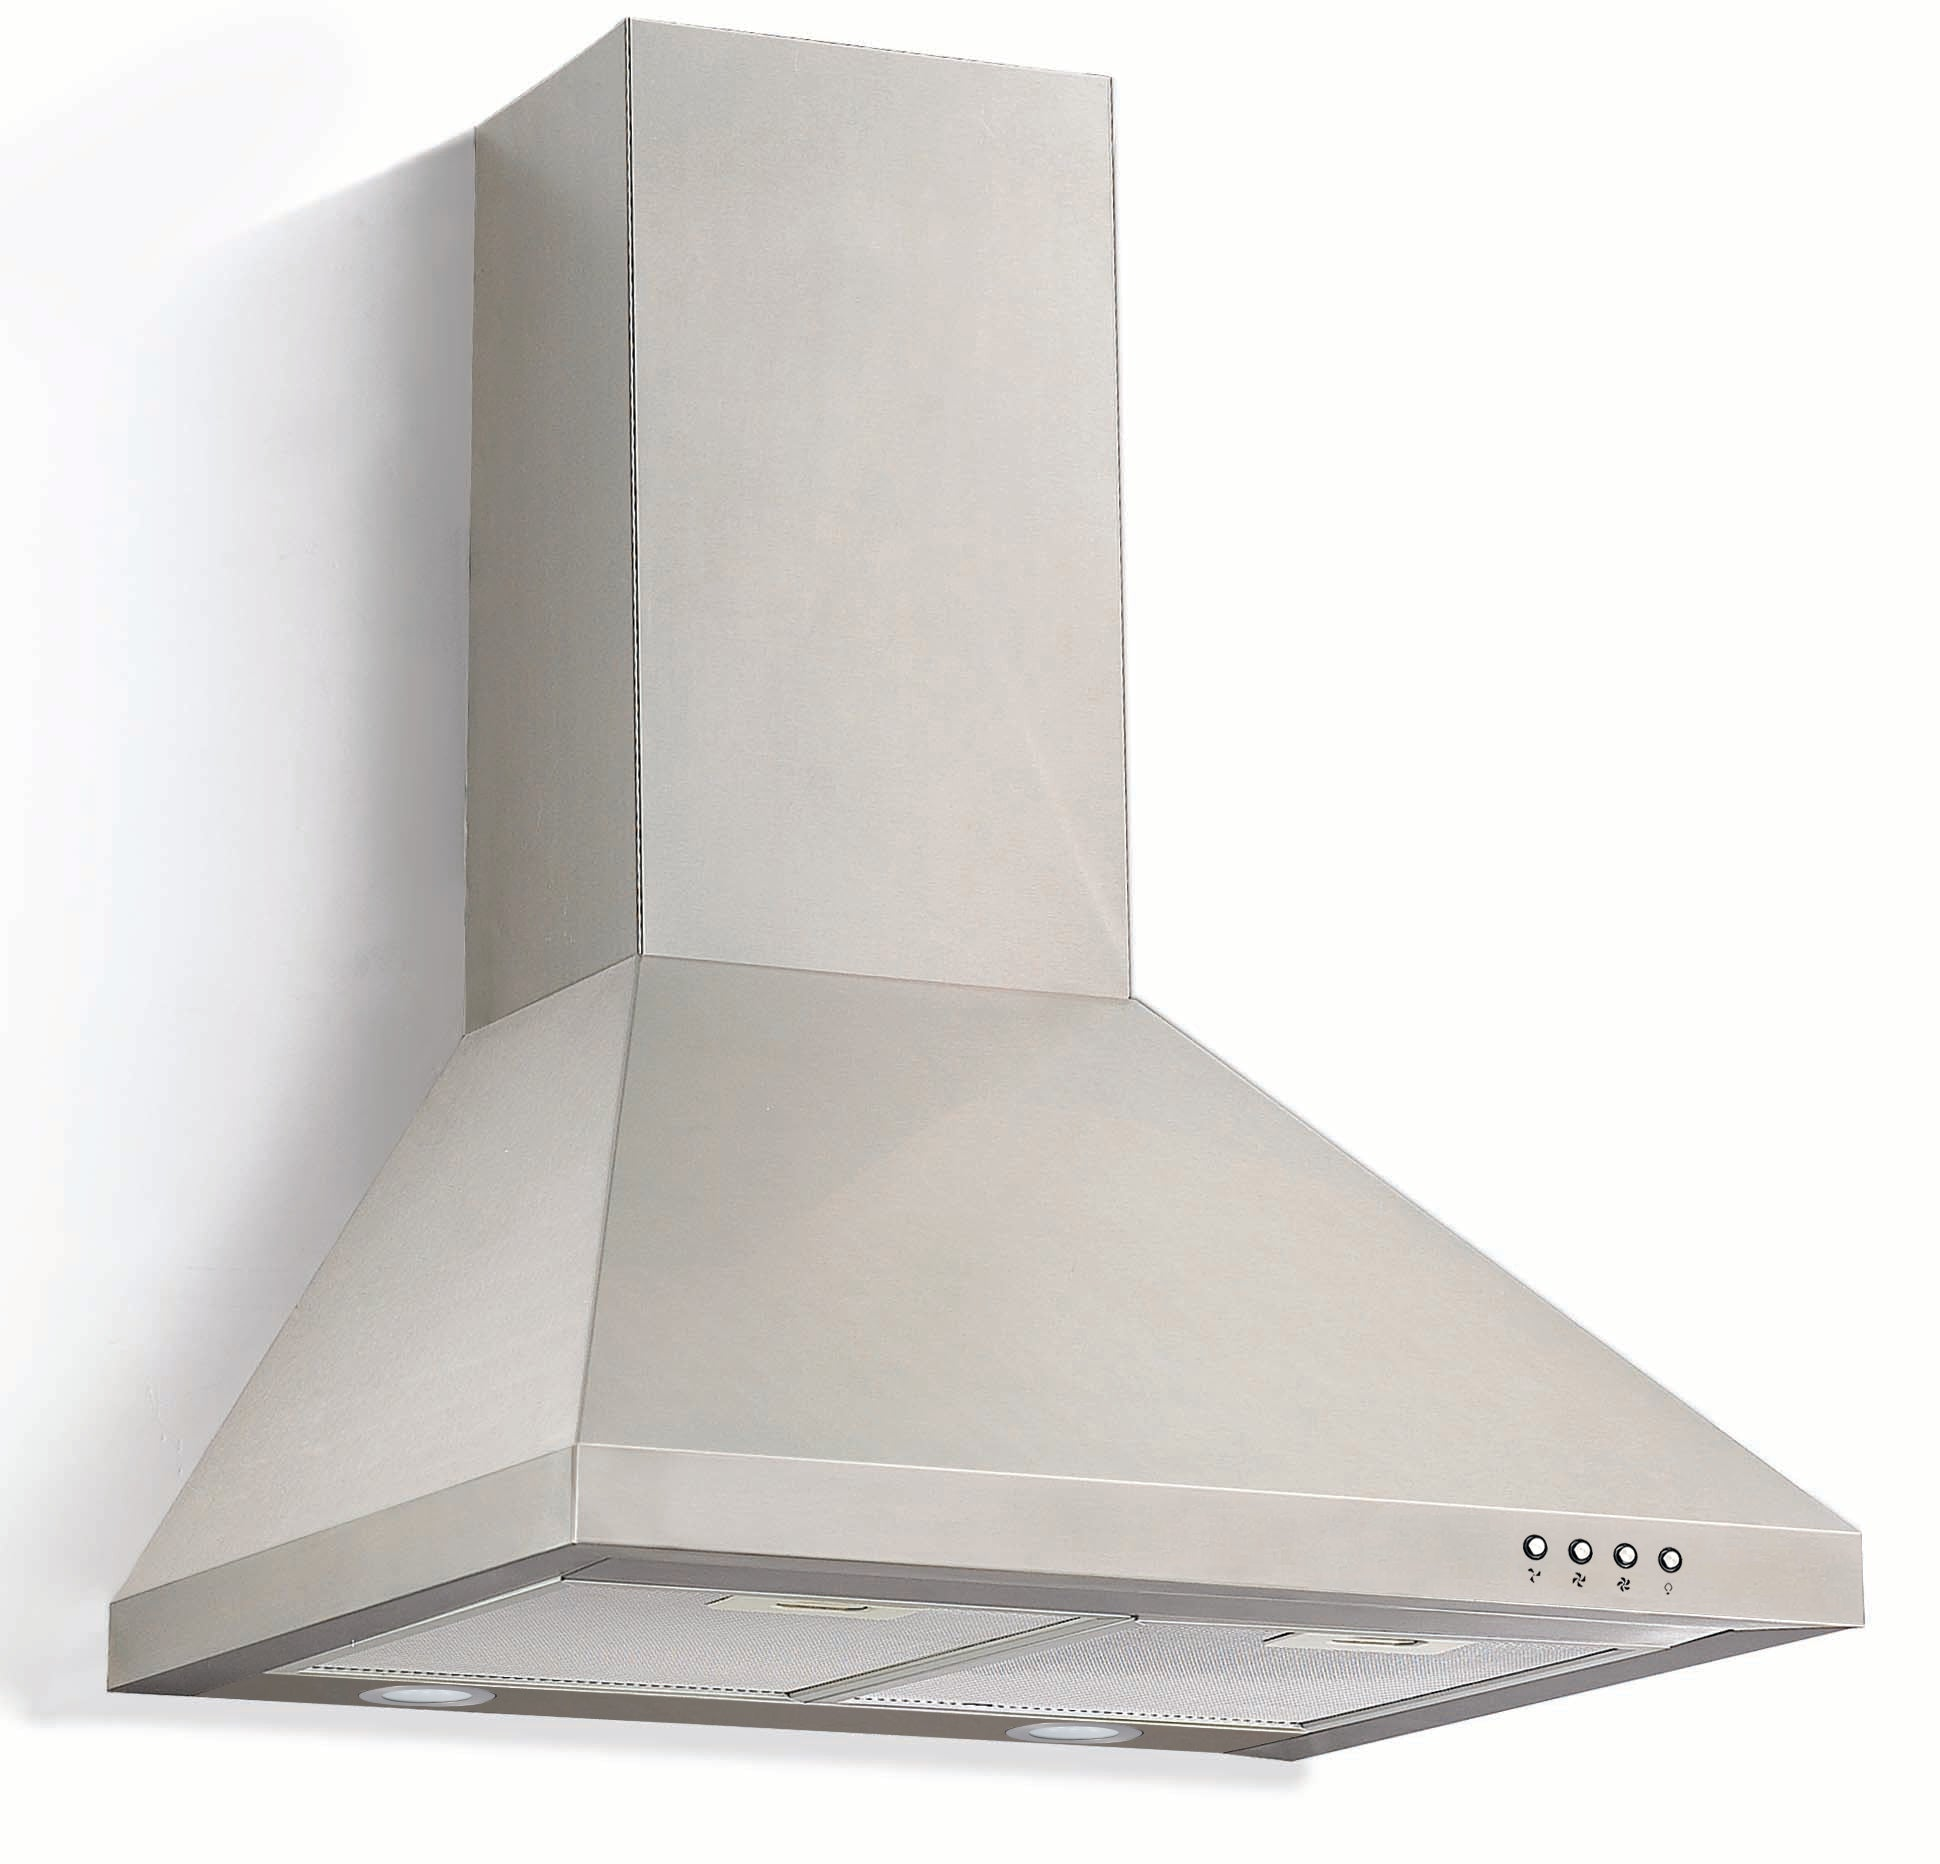 Falcon FAL6052S Stainless Steel Chimney Extractor